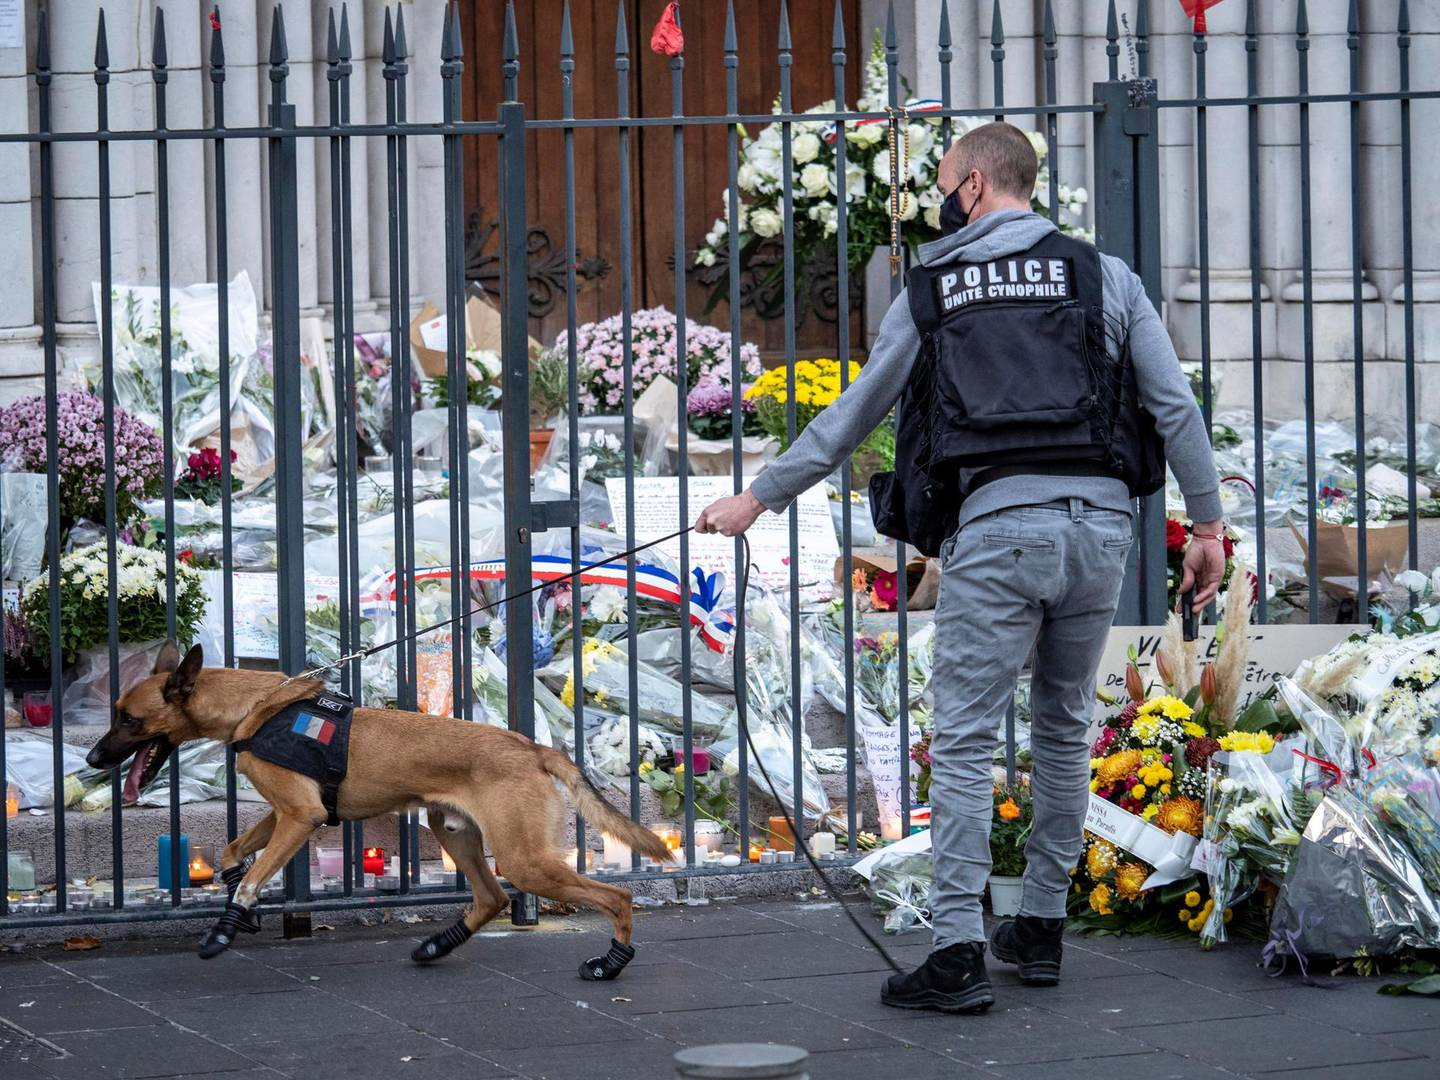 """NICE, FRANCE - NOVEMBER 01: A police officer with a sniffer dog checks flowers in front of Notre Dame basilica, before a mass to pay tribute to the victims on November 01, 2020 in Nice, France. A 21-year-old Tunisian man is accused of fatally stabbing three people in the church on Thursday, in what French President Emmanuel Macron described as an """"Islamist terrorist attack."""" The attacker was shot and wounded by police and is reported to be in critical condition. (Photo by Arnold Jerocki/Getty Images)"""